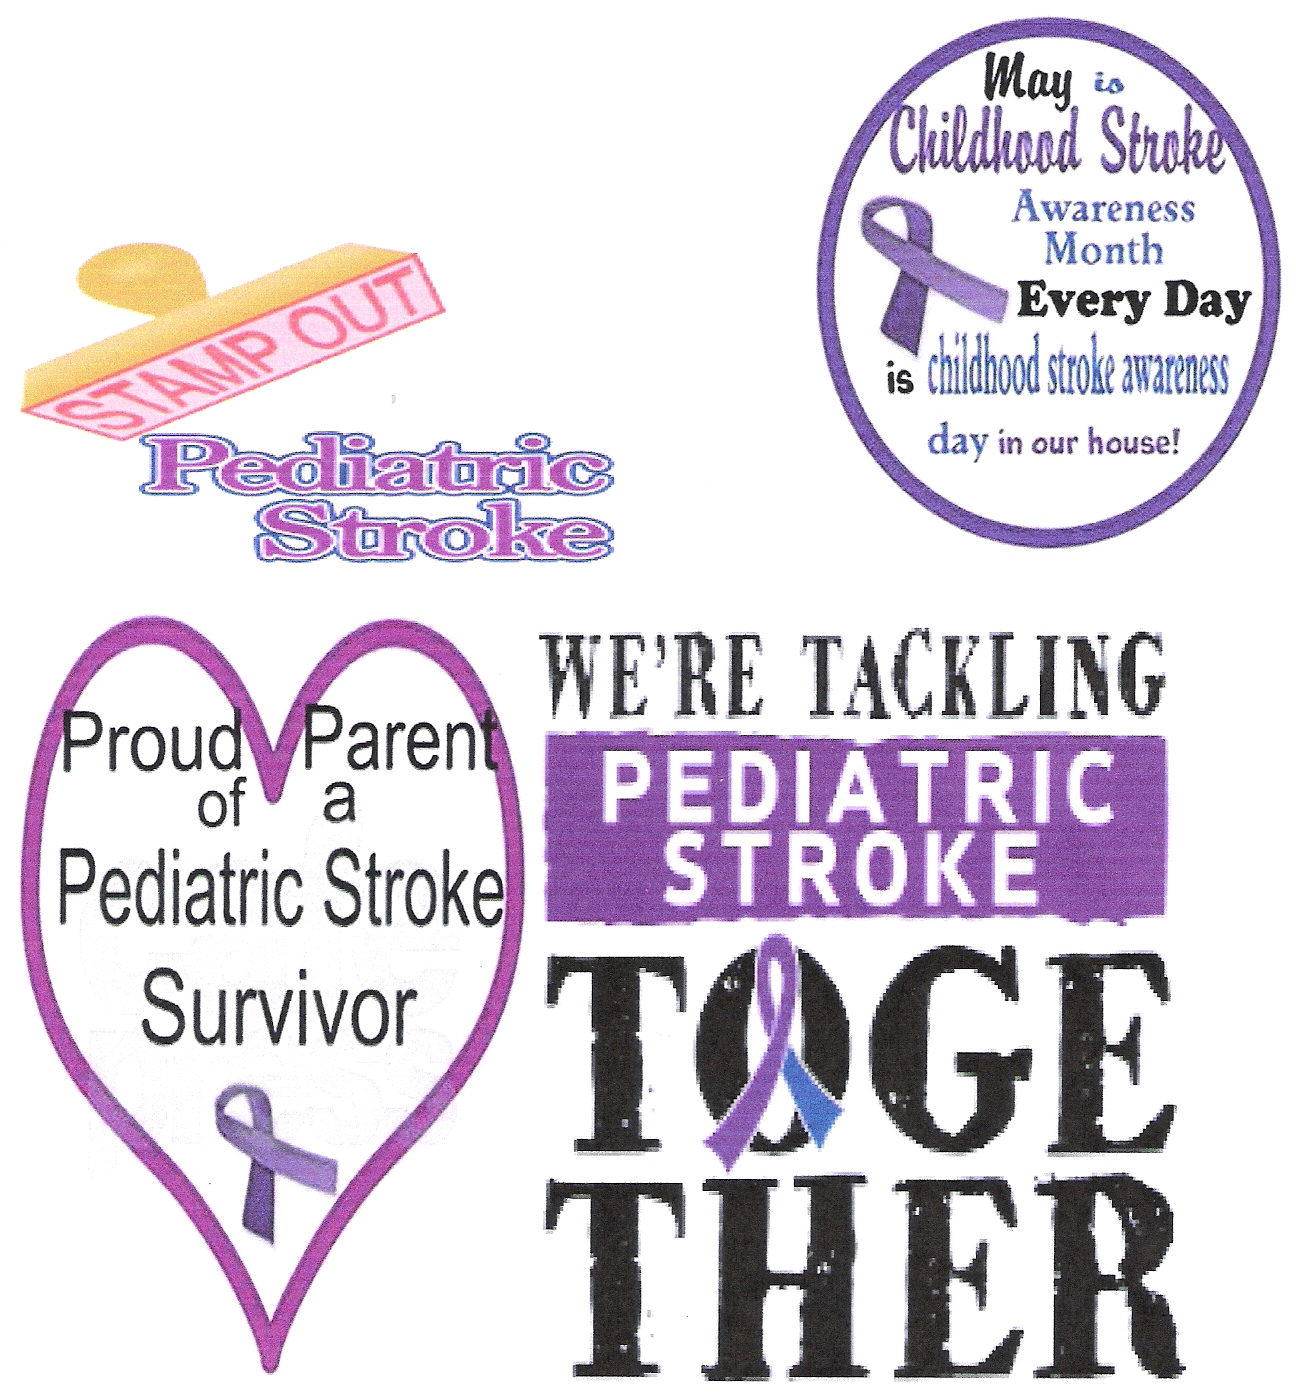 Pediatric Stroke Survivor Since 2002